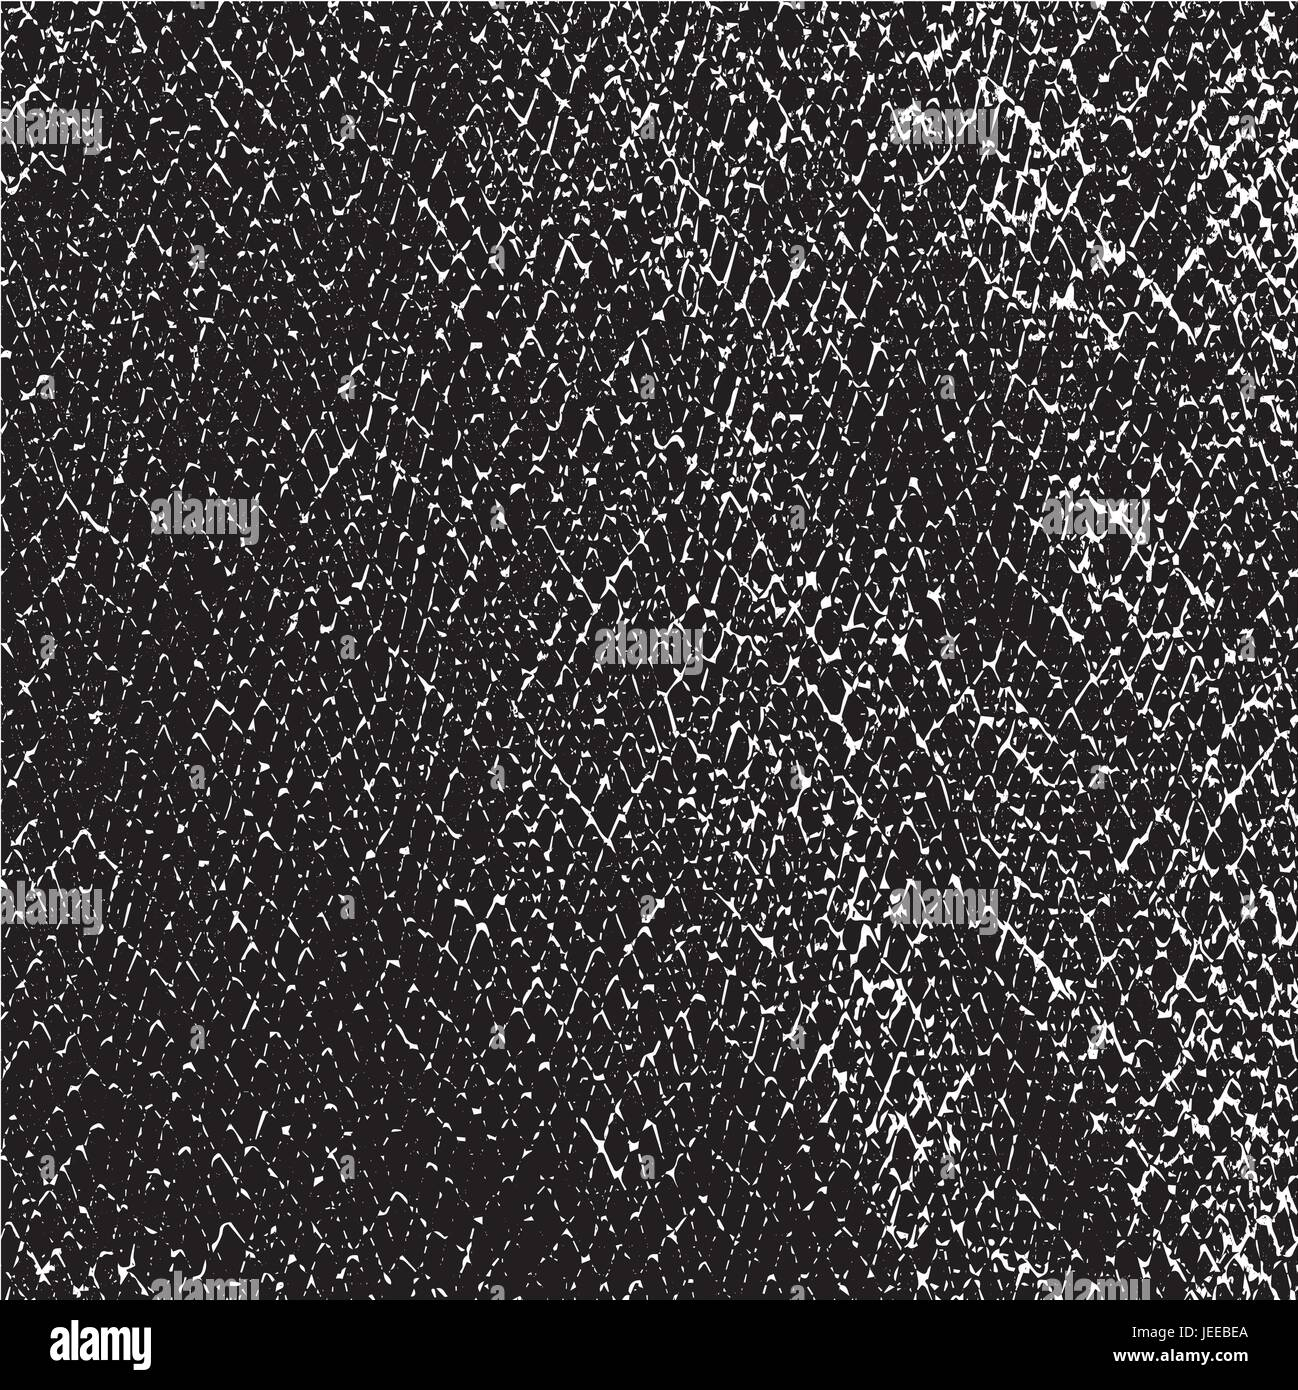 Distressed Overlay Texture Of Crocodile Or Snake Skin Leather Grunge Vector Background